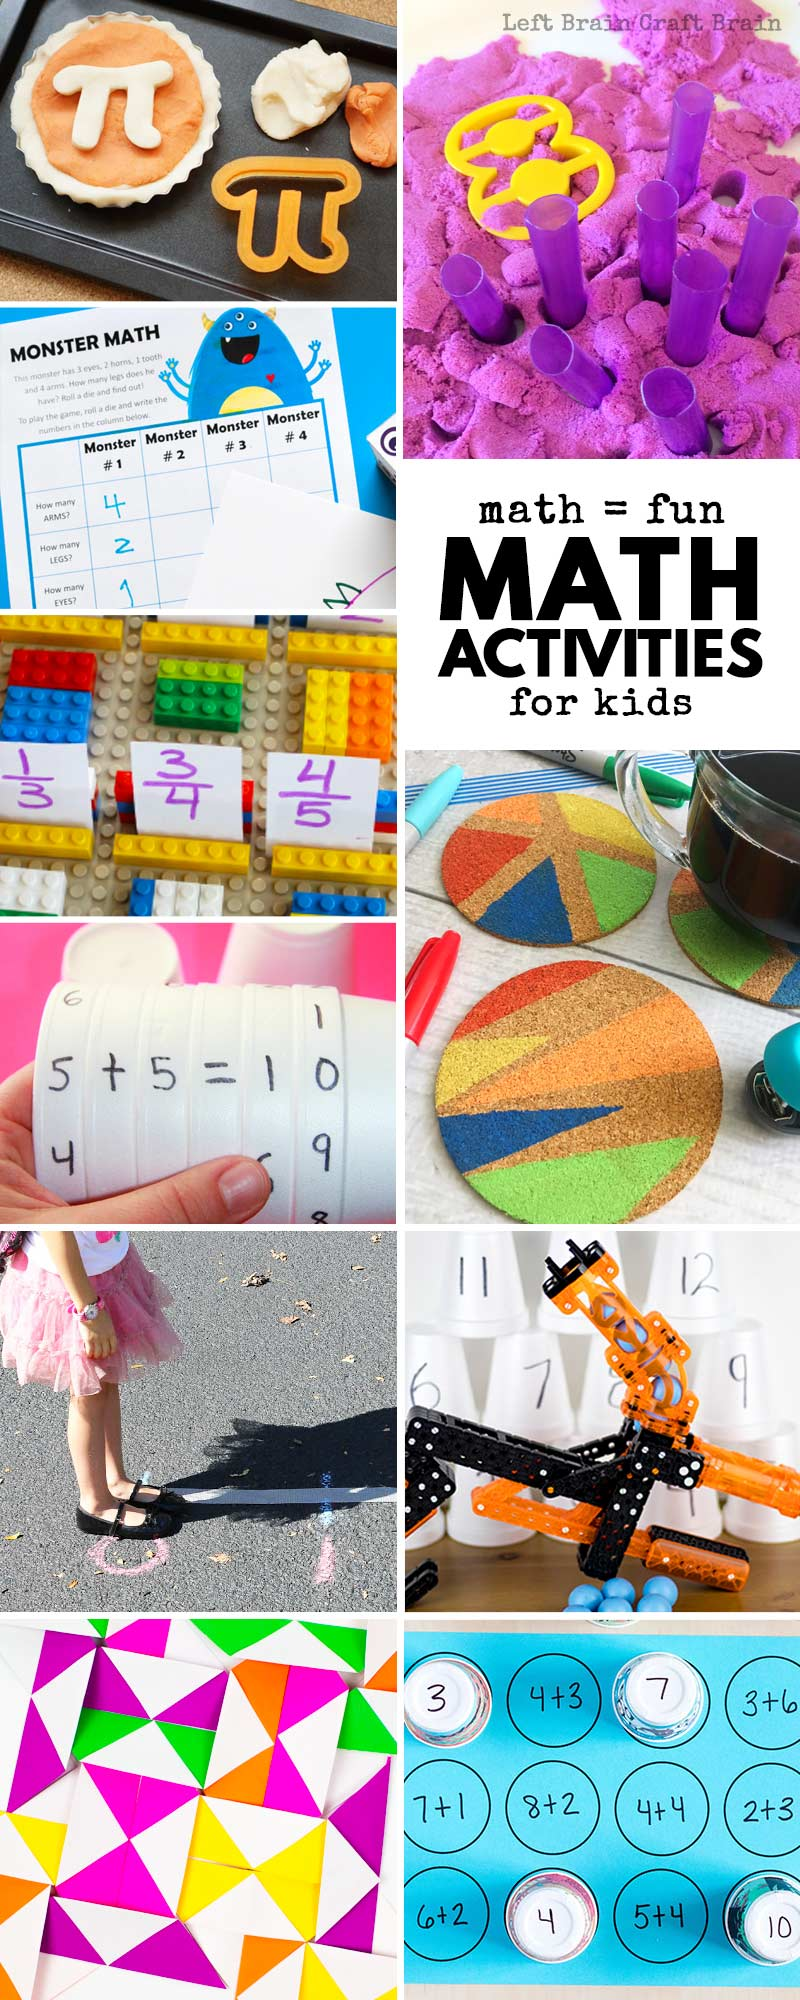 Whether you're practicing math facts or adding new math concepts to your kid's growing math knowledge, these math activities for kids are meant for you to help your kids thrive in our competitive real world. Tons of math printables, hands-on math activities, math games, and more.